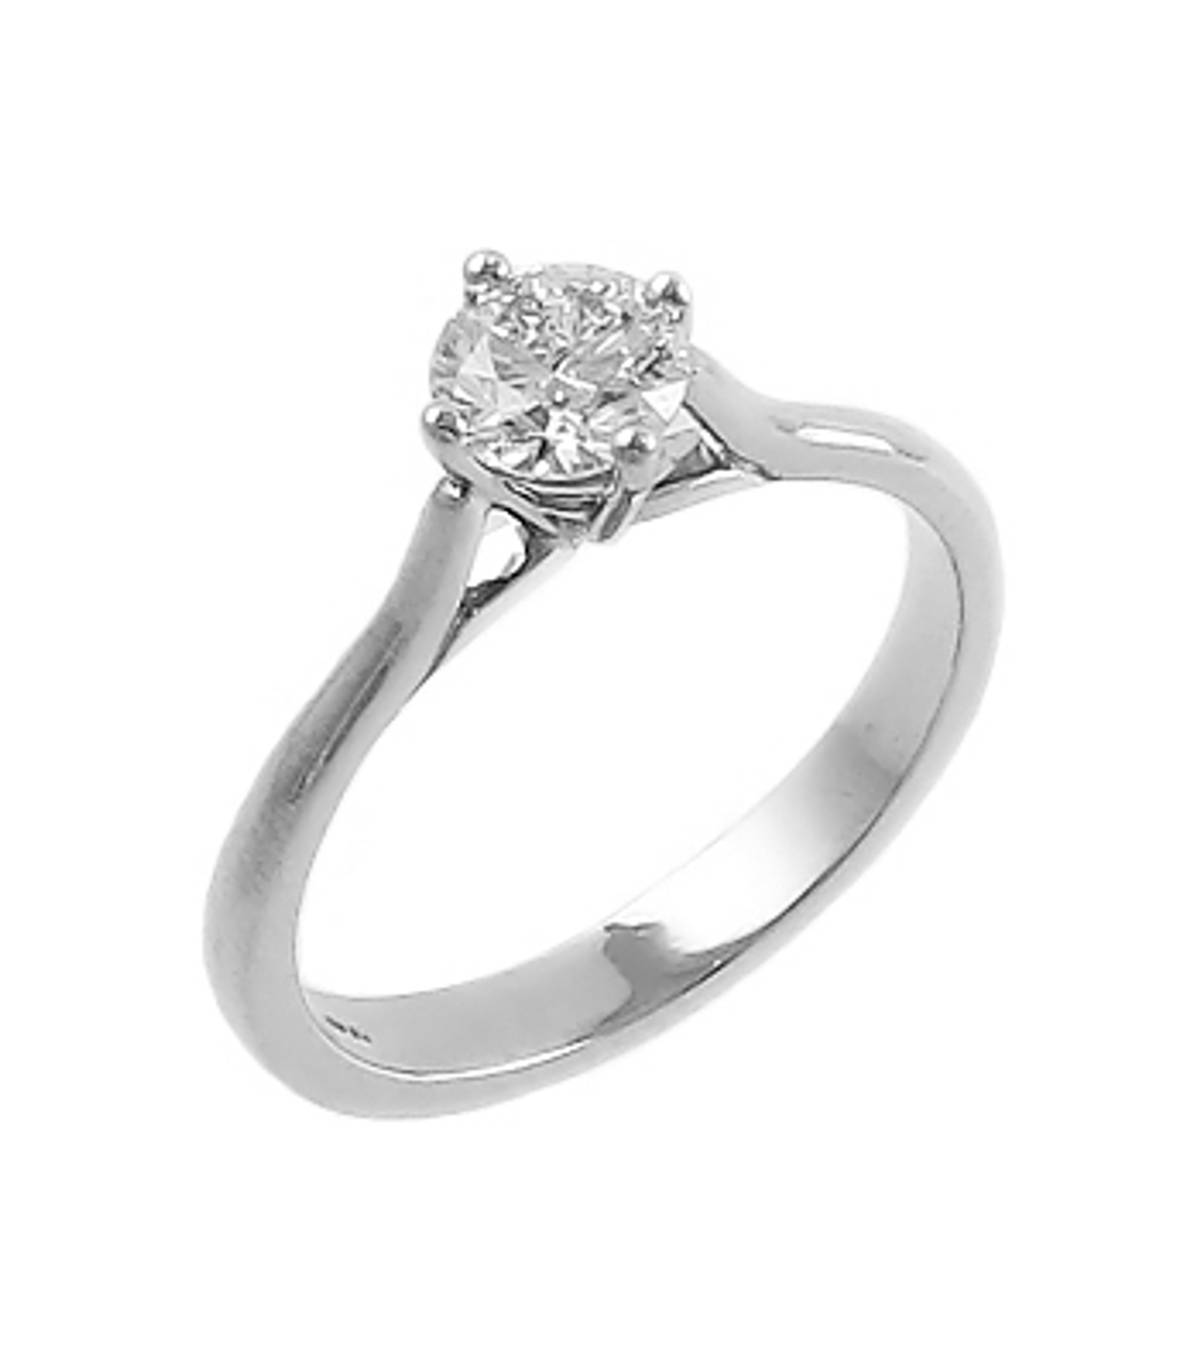 0.62ct brilliant cut diamond 4 claw set engagement ring set in 18ct white gold